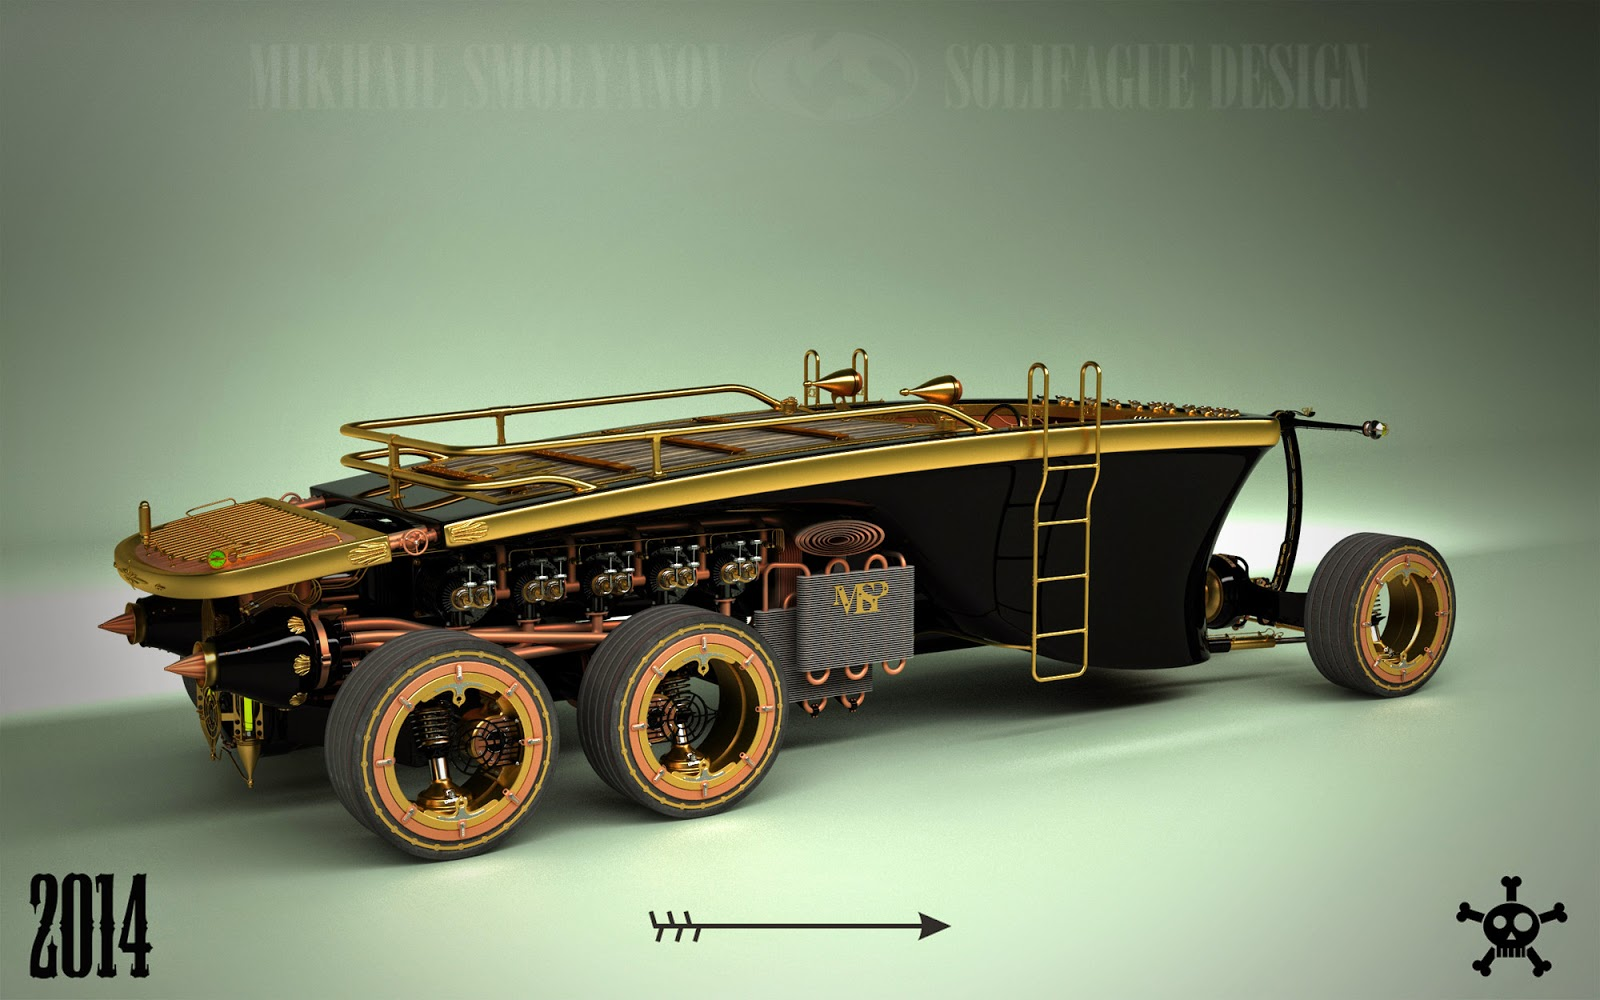 Steampunk 6 Wheel Land Yacht Is A Car From The Future Past